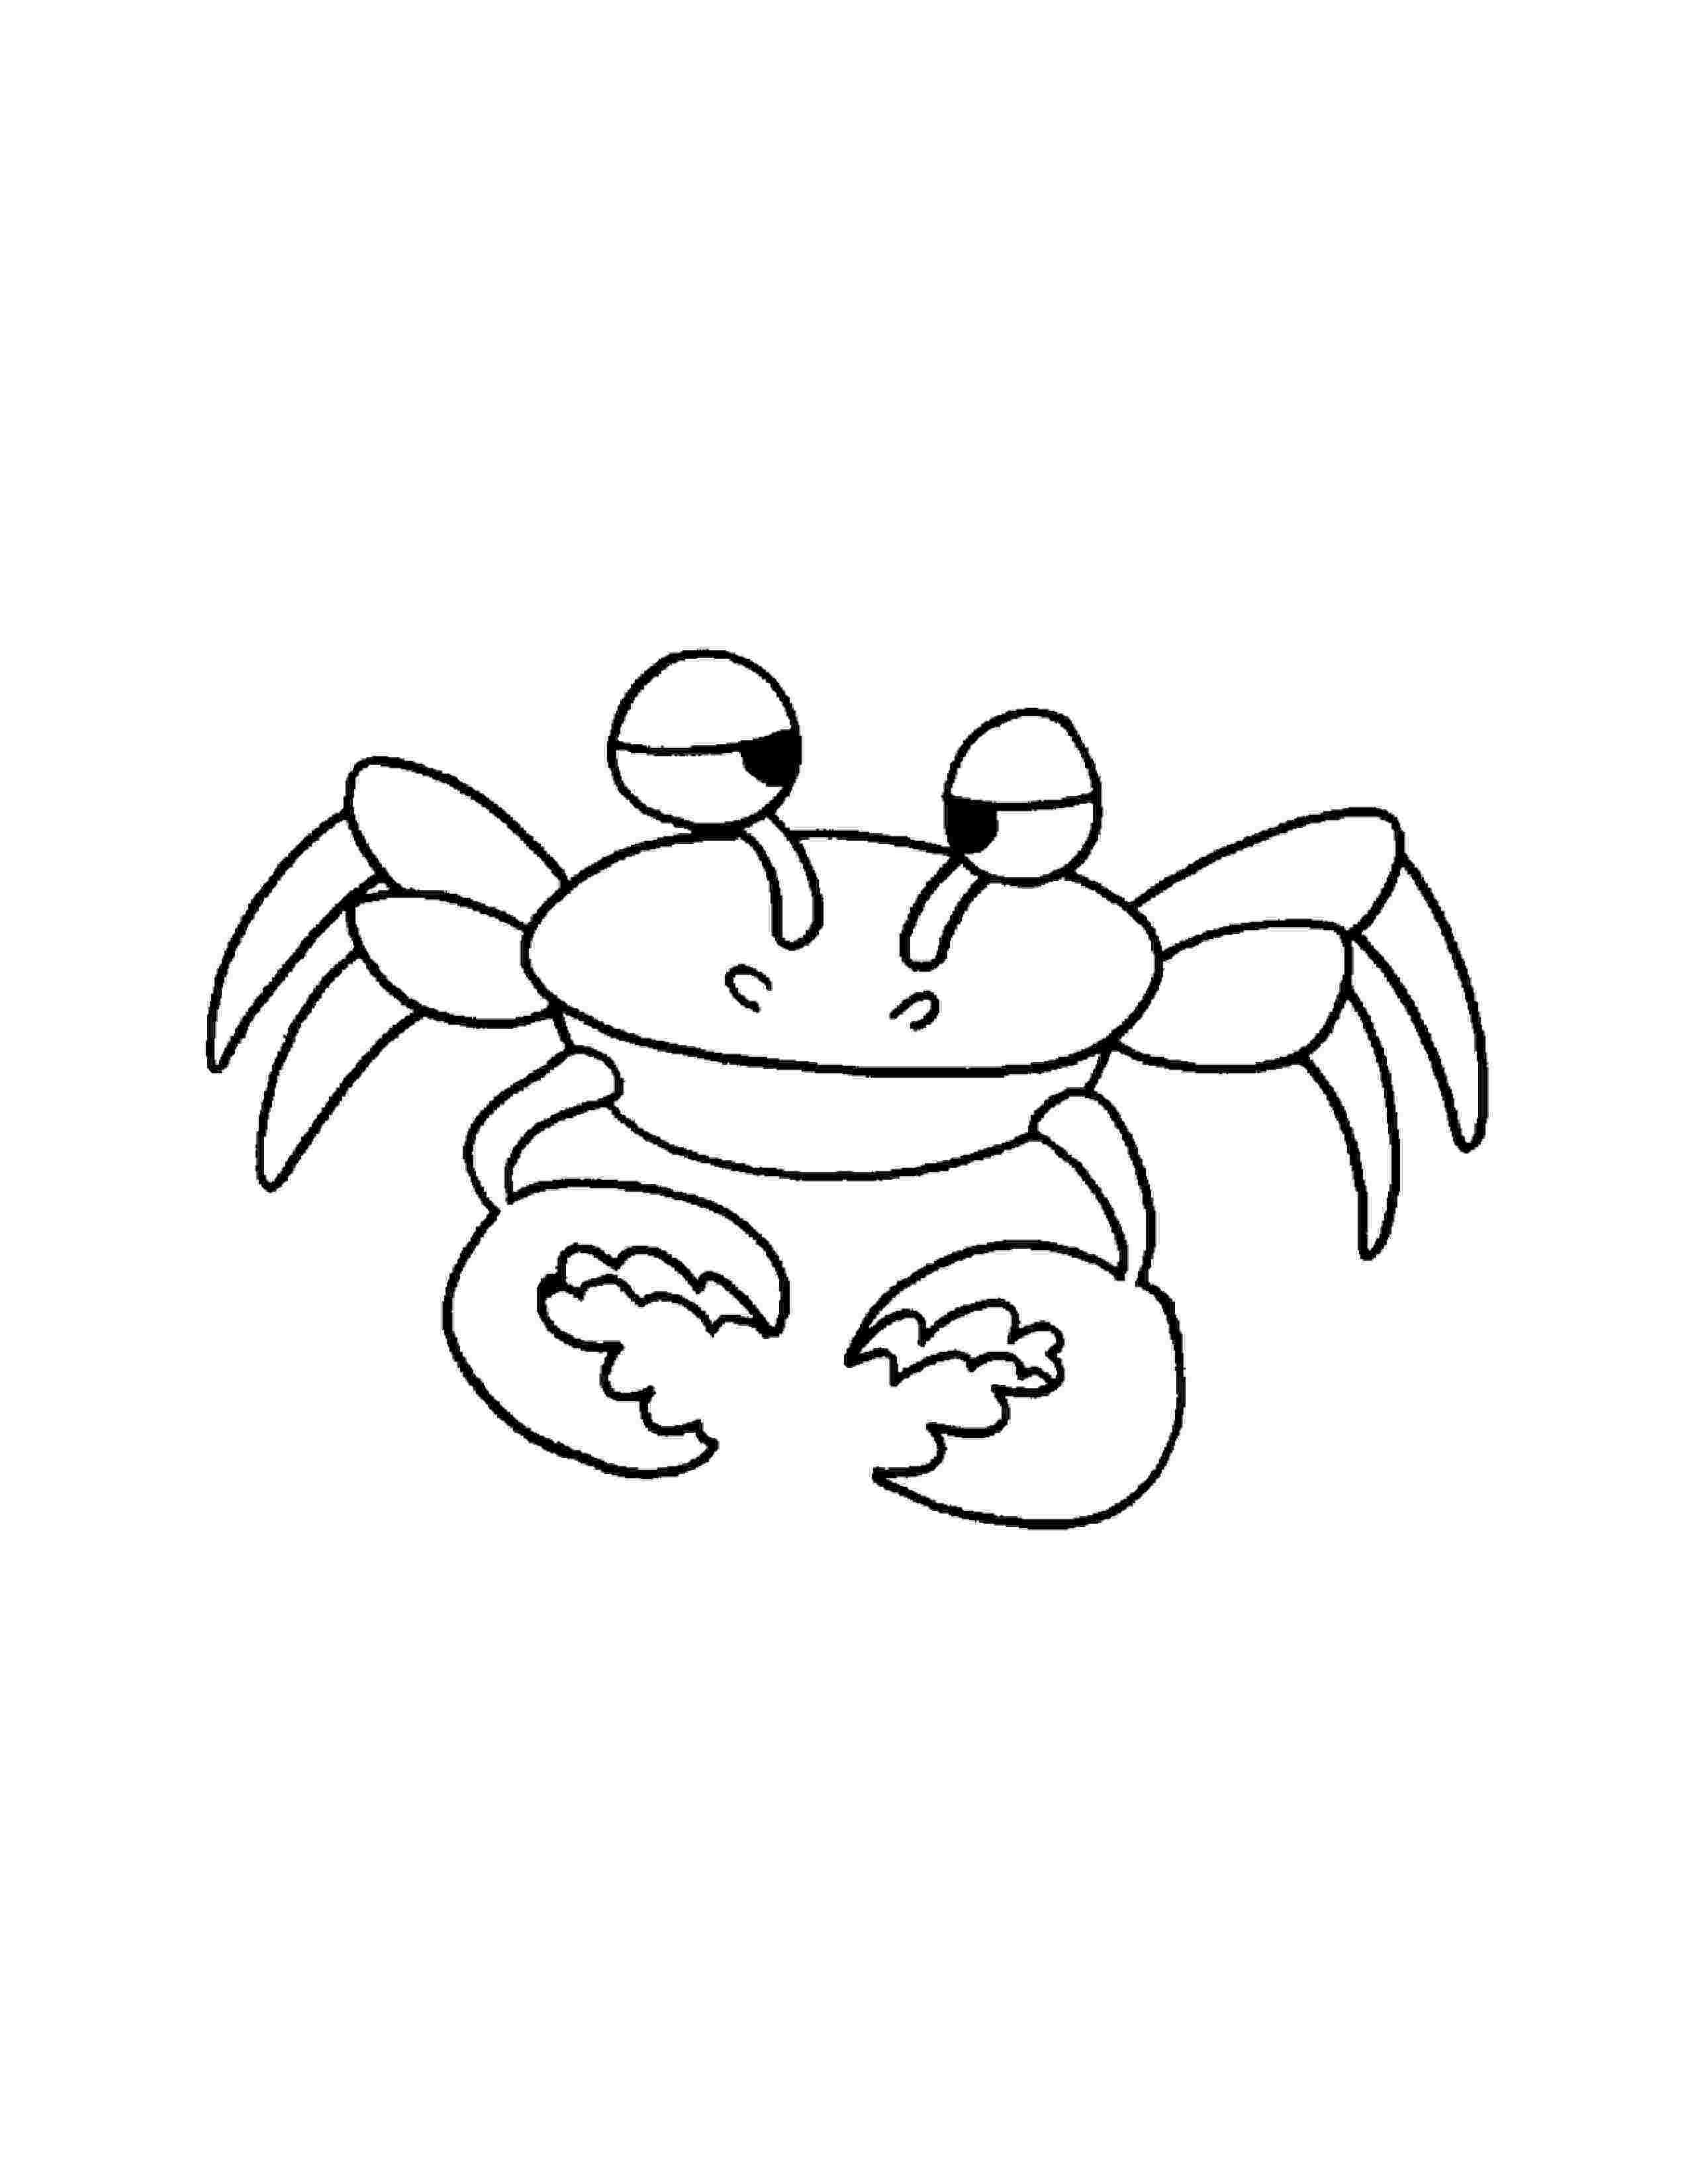 sea life animals coloring pages sea animals coloring pages coloring pages for kids sea life animals pages coloring